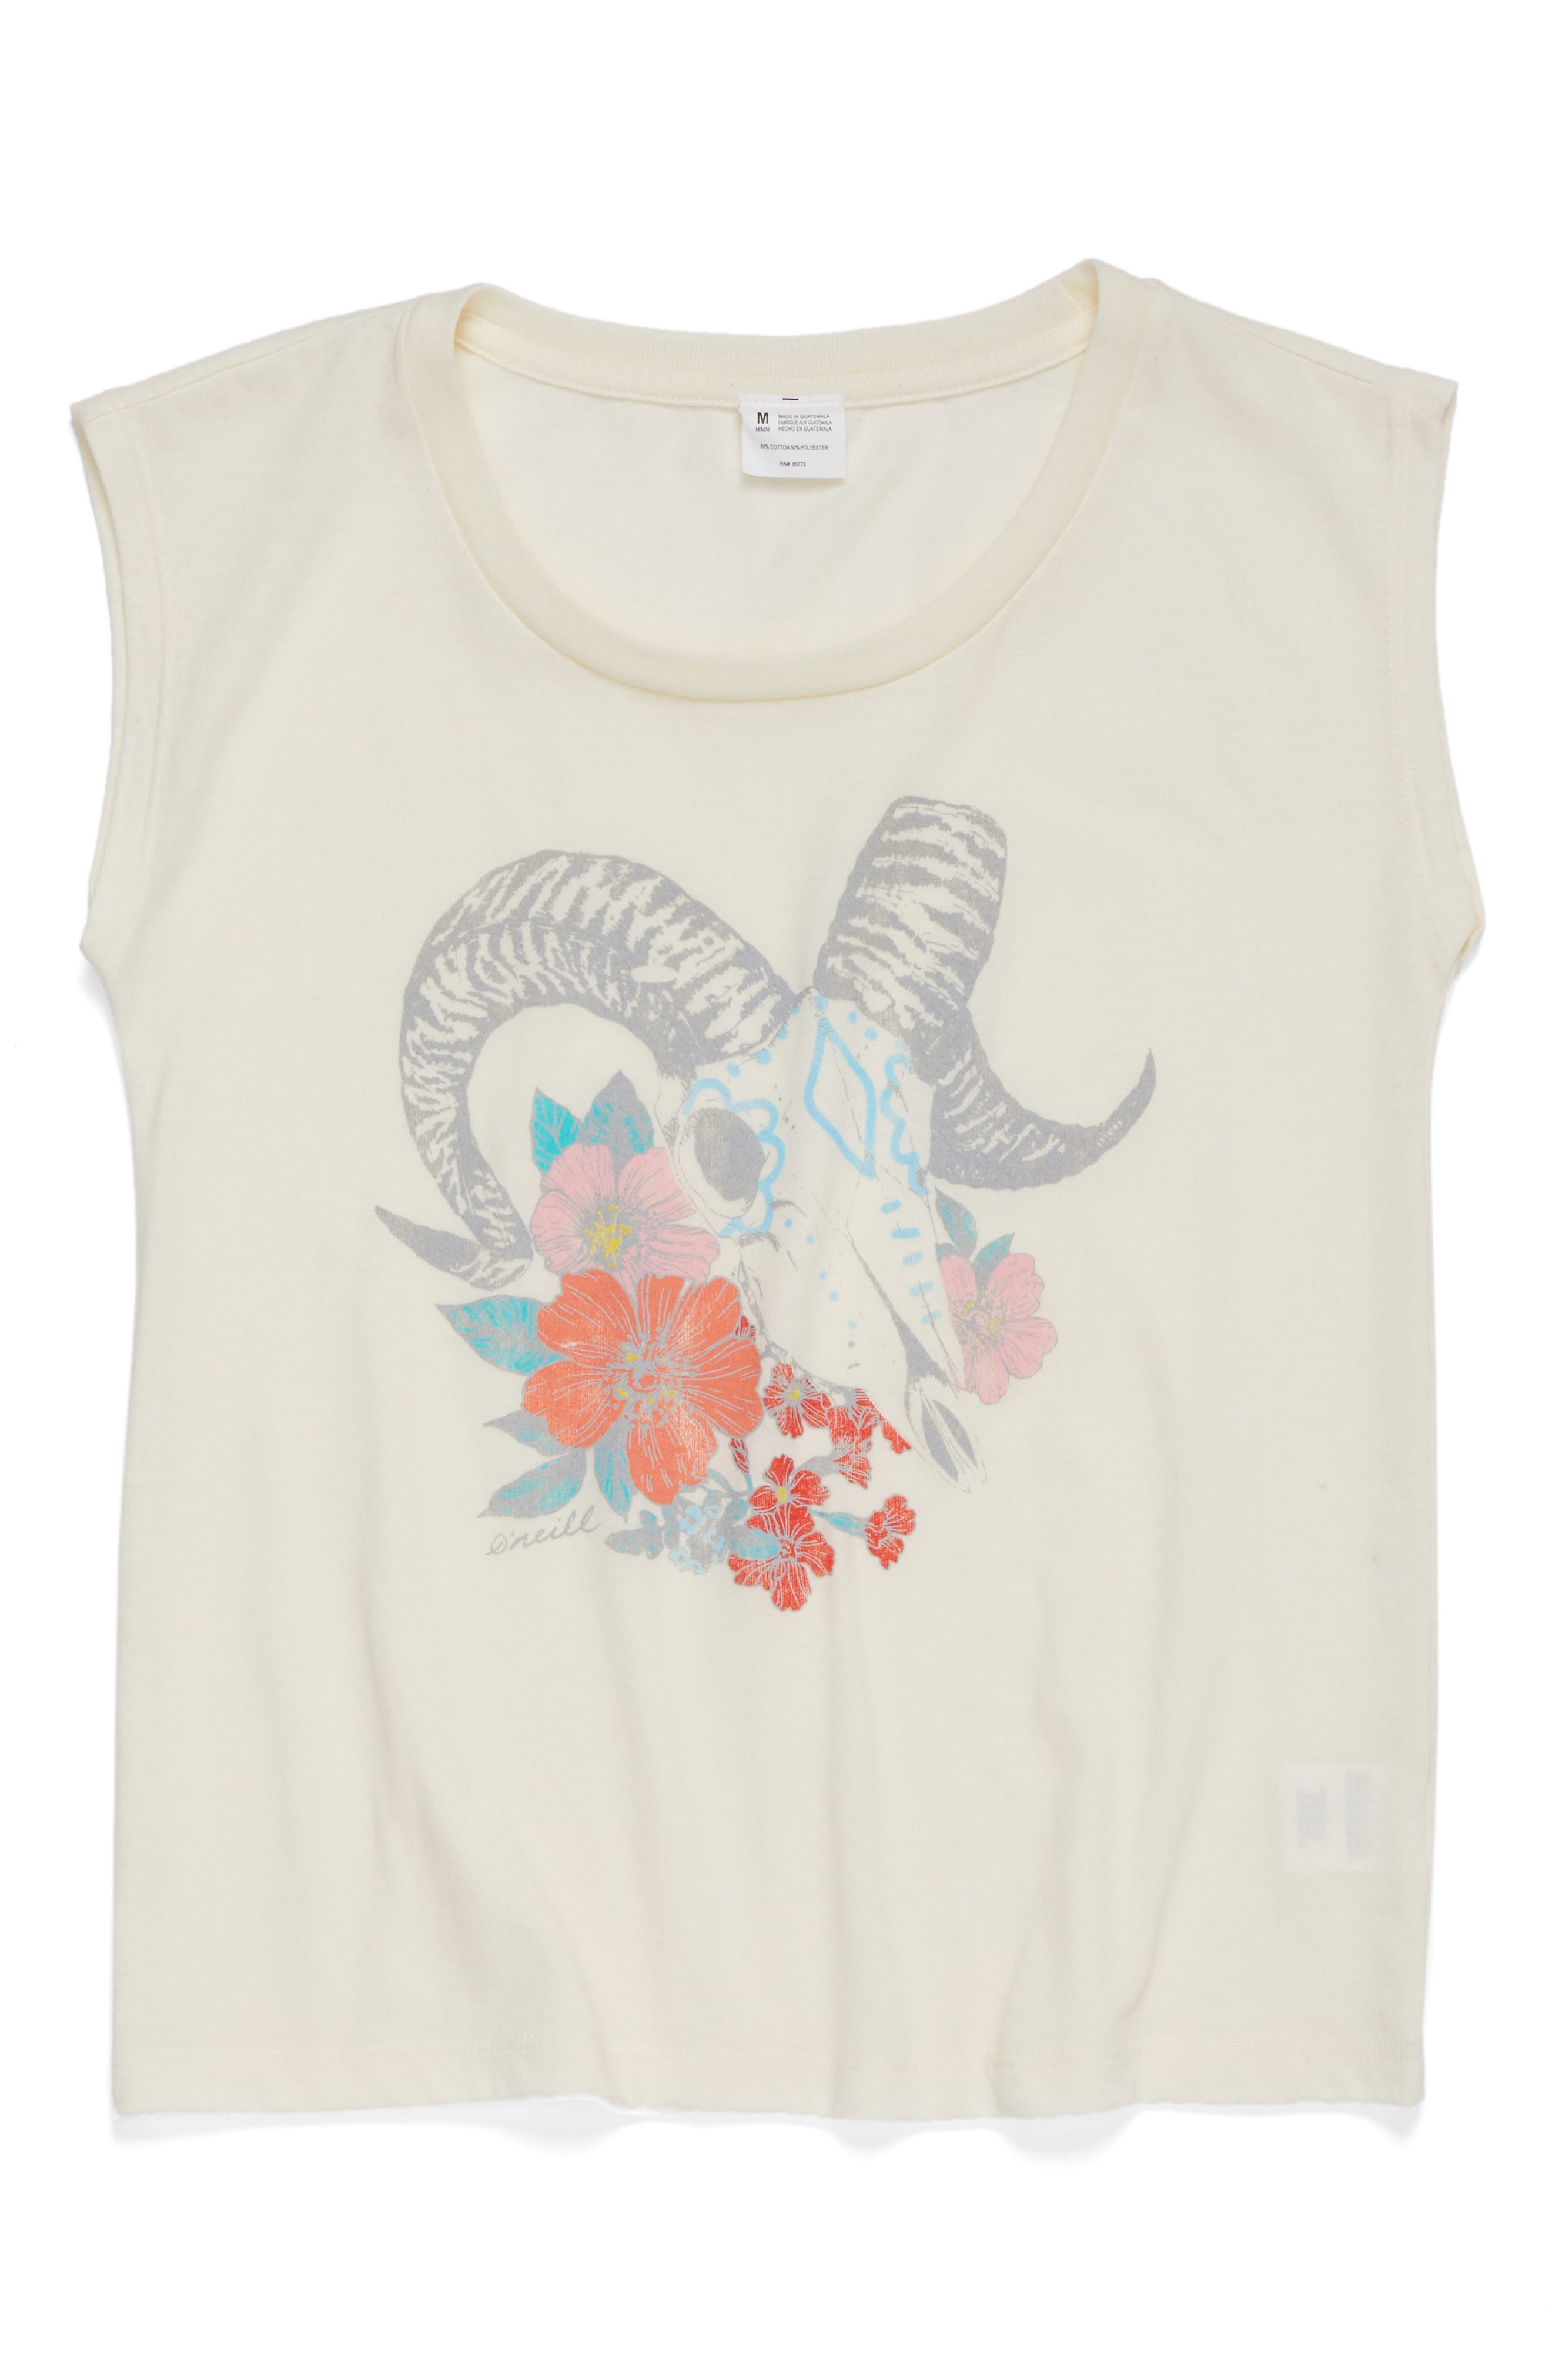 ONEILL Aries Sky Graphic Muscle Tee